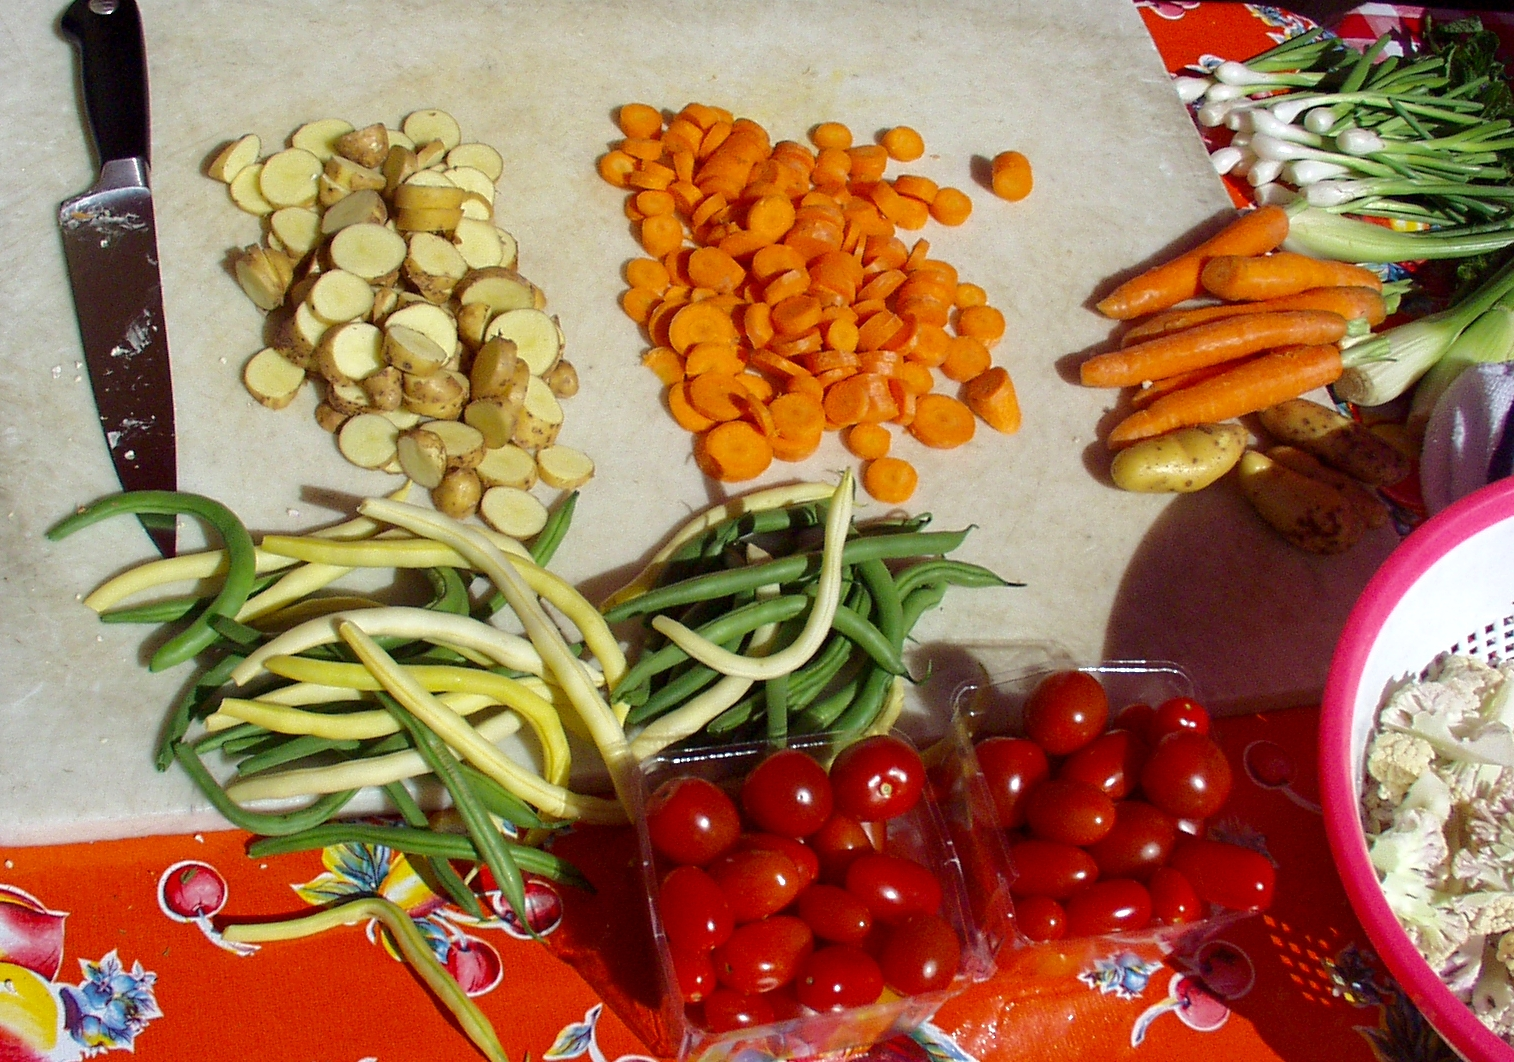 Having all your ingredients ready in advance makes the cooking run smoothy. Photo copyright 2009 by Zachary D. Lyons.